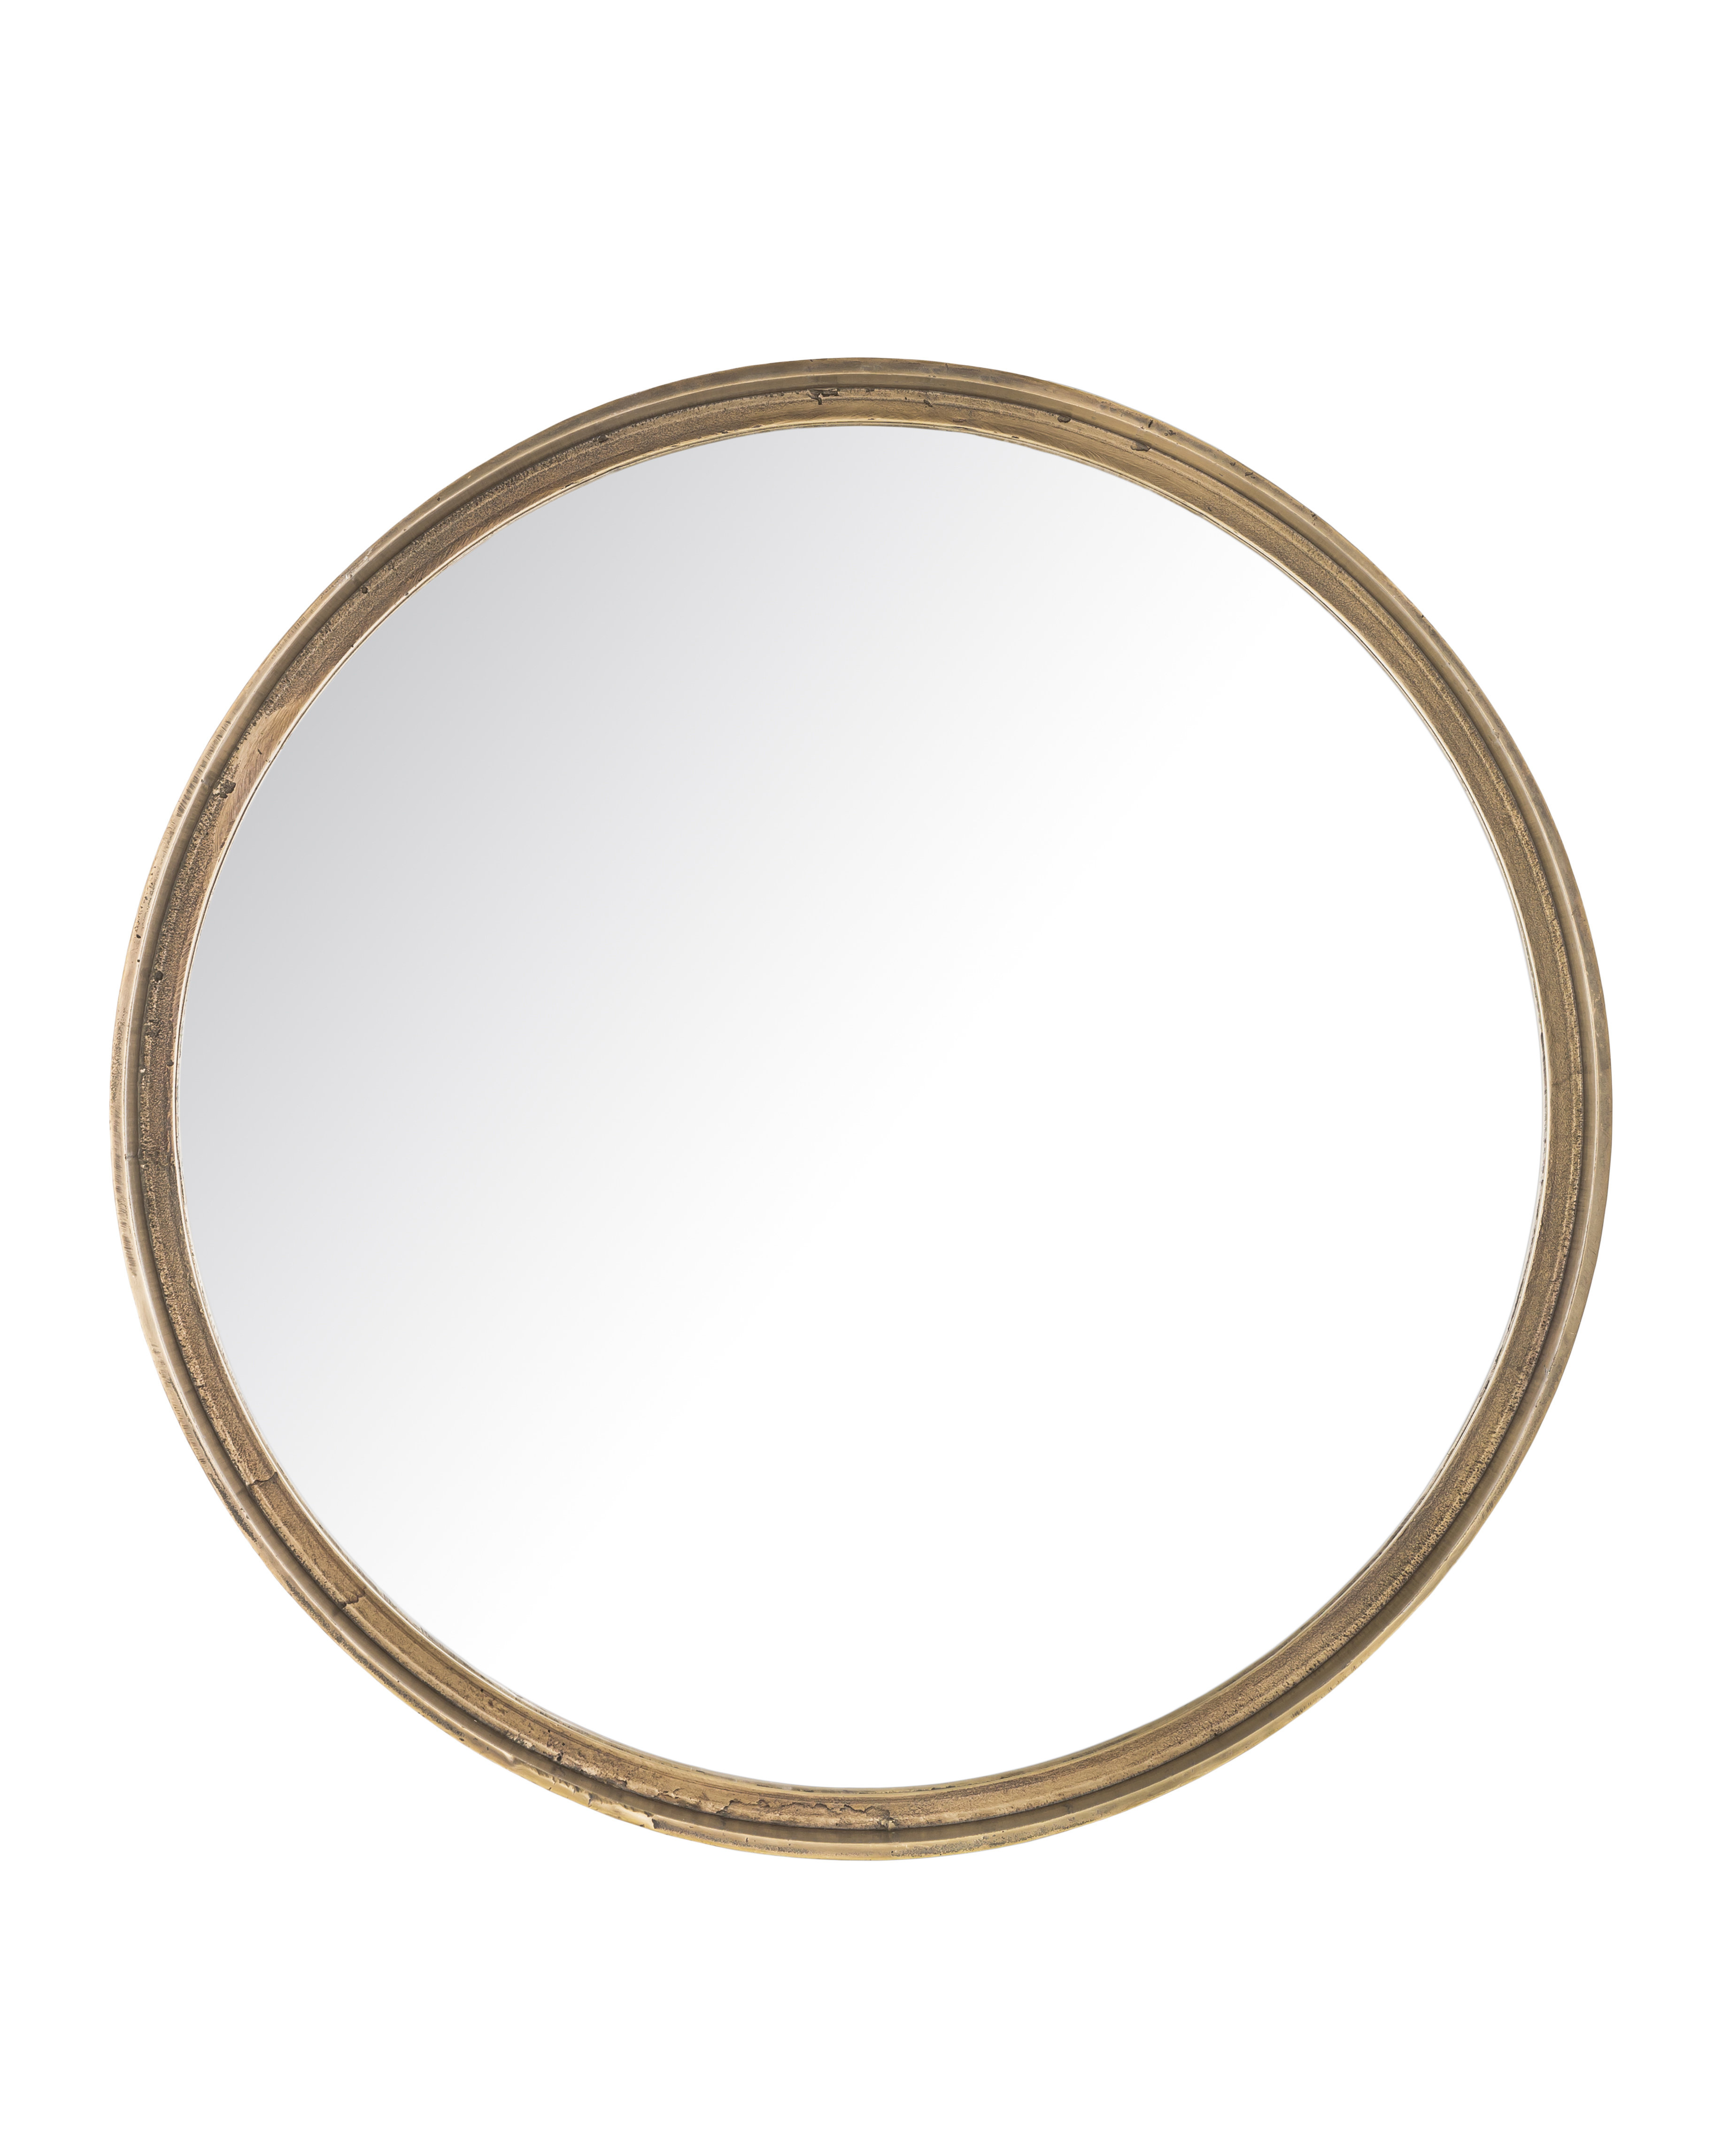 Foulger Accent Mirror Regarding Rena Accent Mirrors (View 24 of 30)